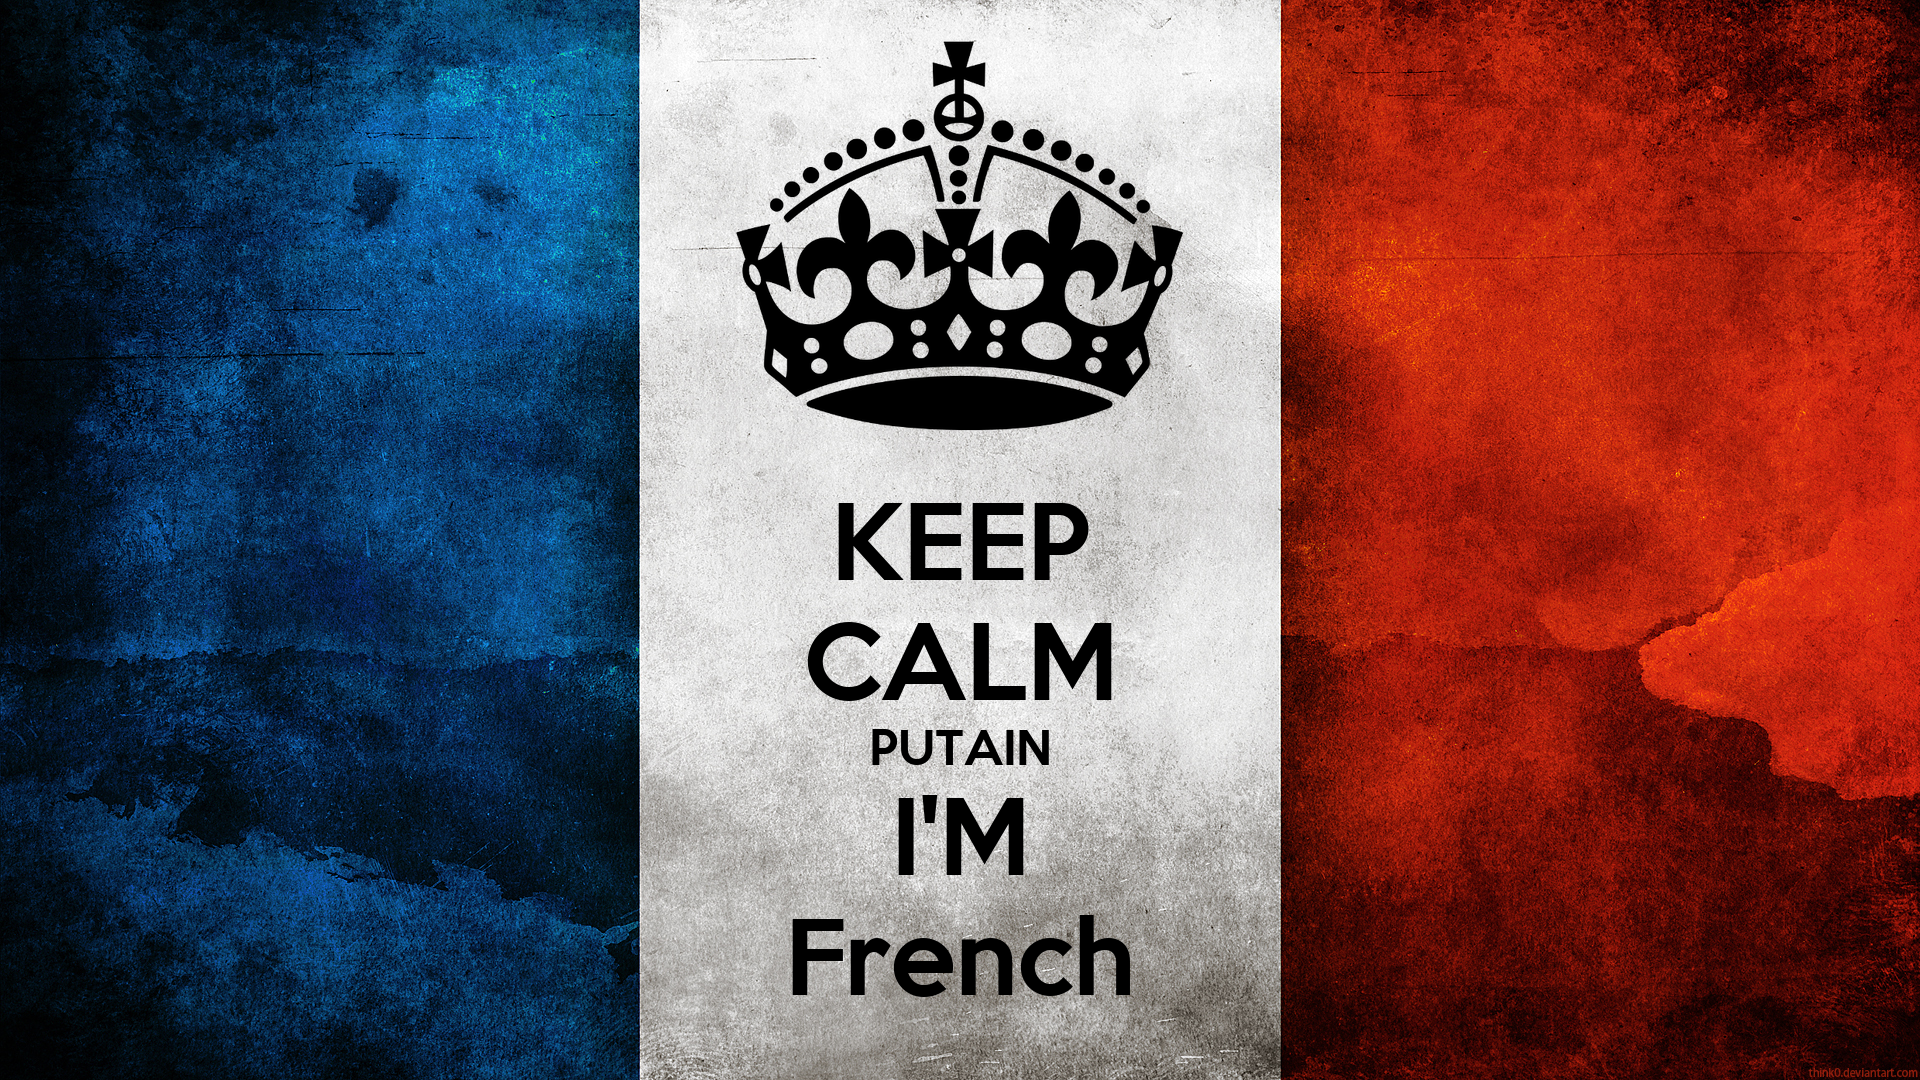 KEEP CALM PUTAIN I'M French Poster